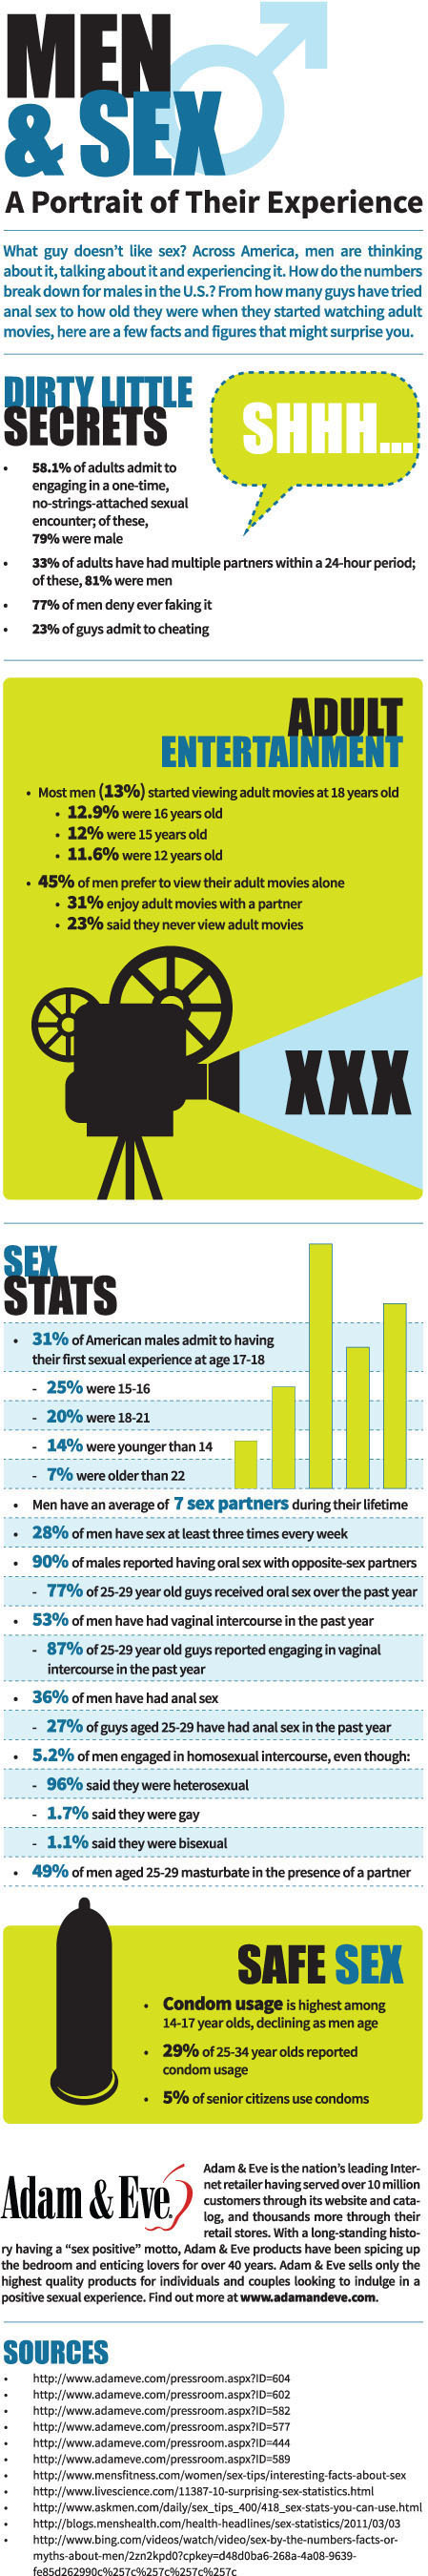 "ADAMANDEVE.COM REVEALS STATISTICS ON ""MEN & SEX"".  (PRNewsFoto/AdamAndEve.com)"